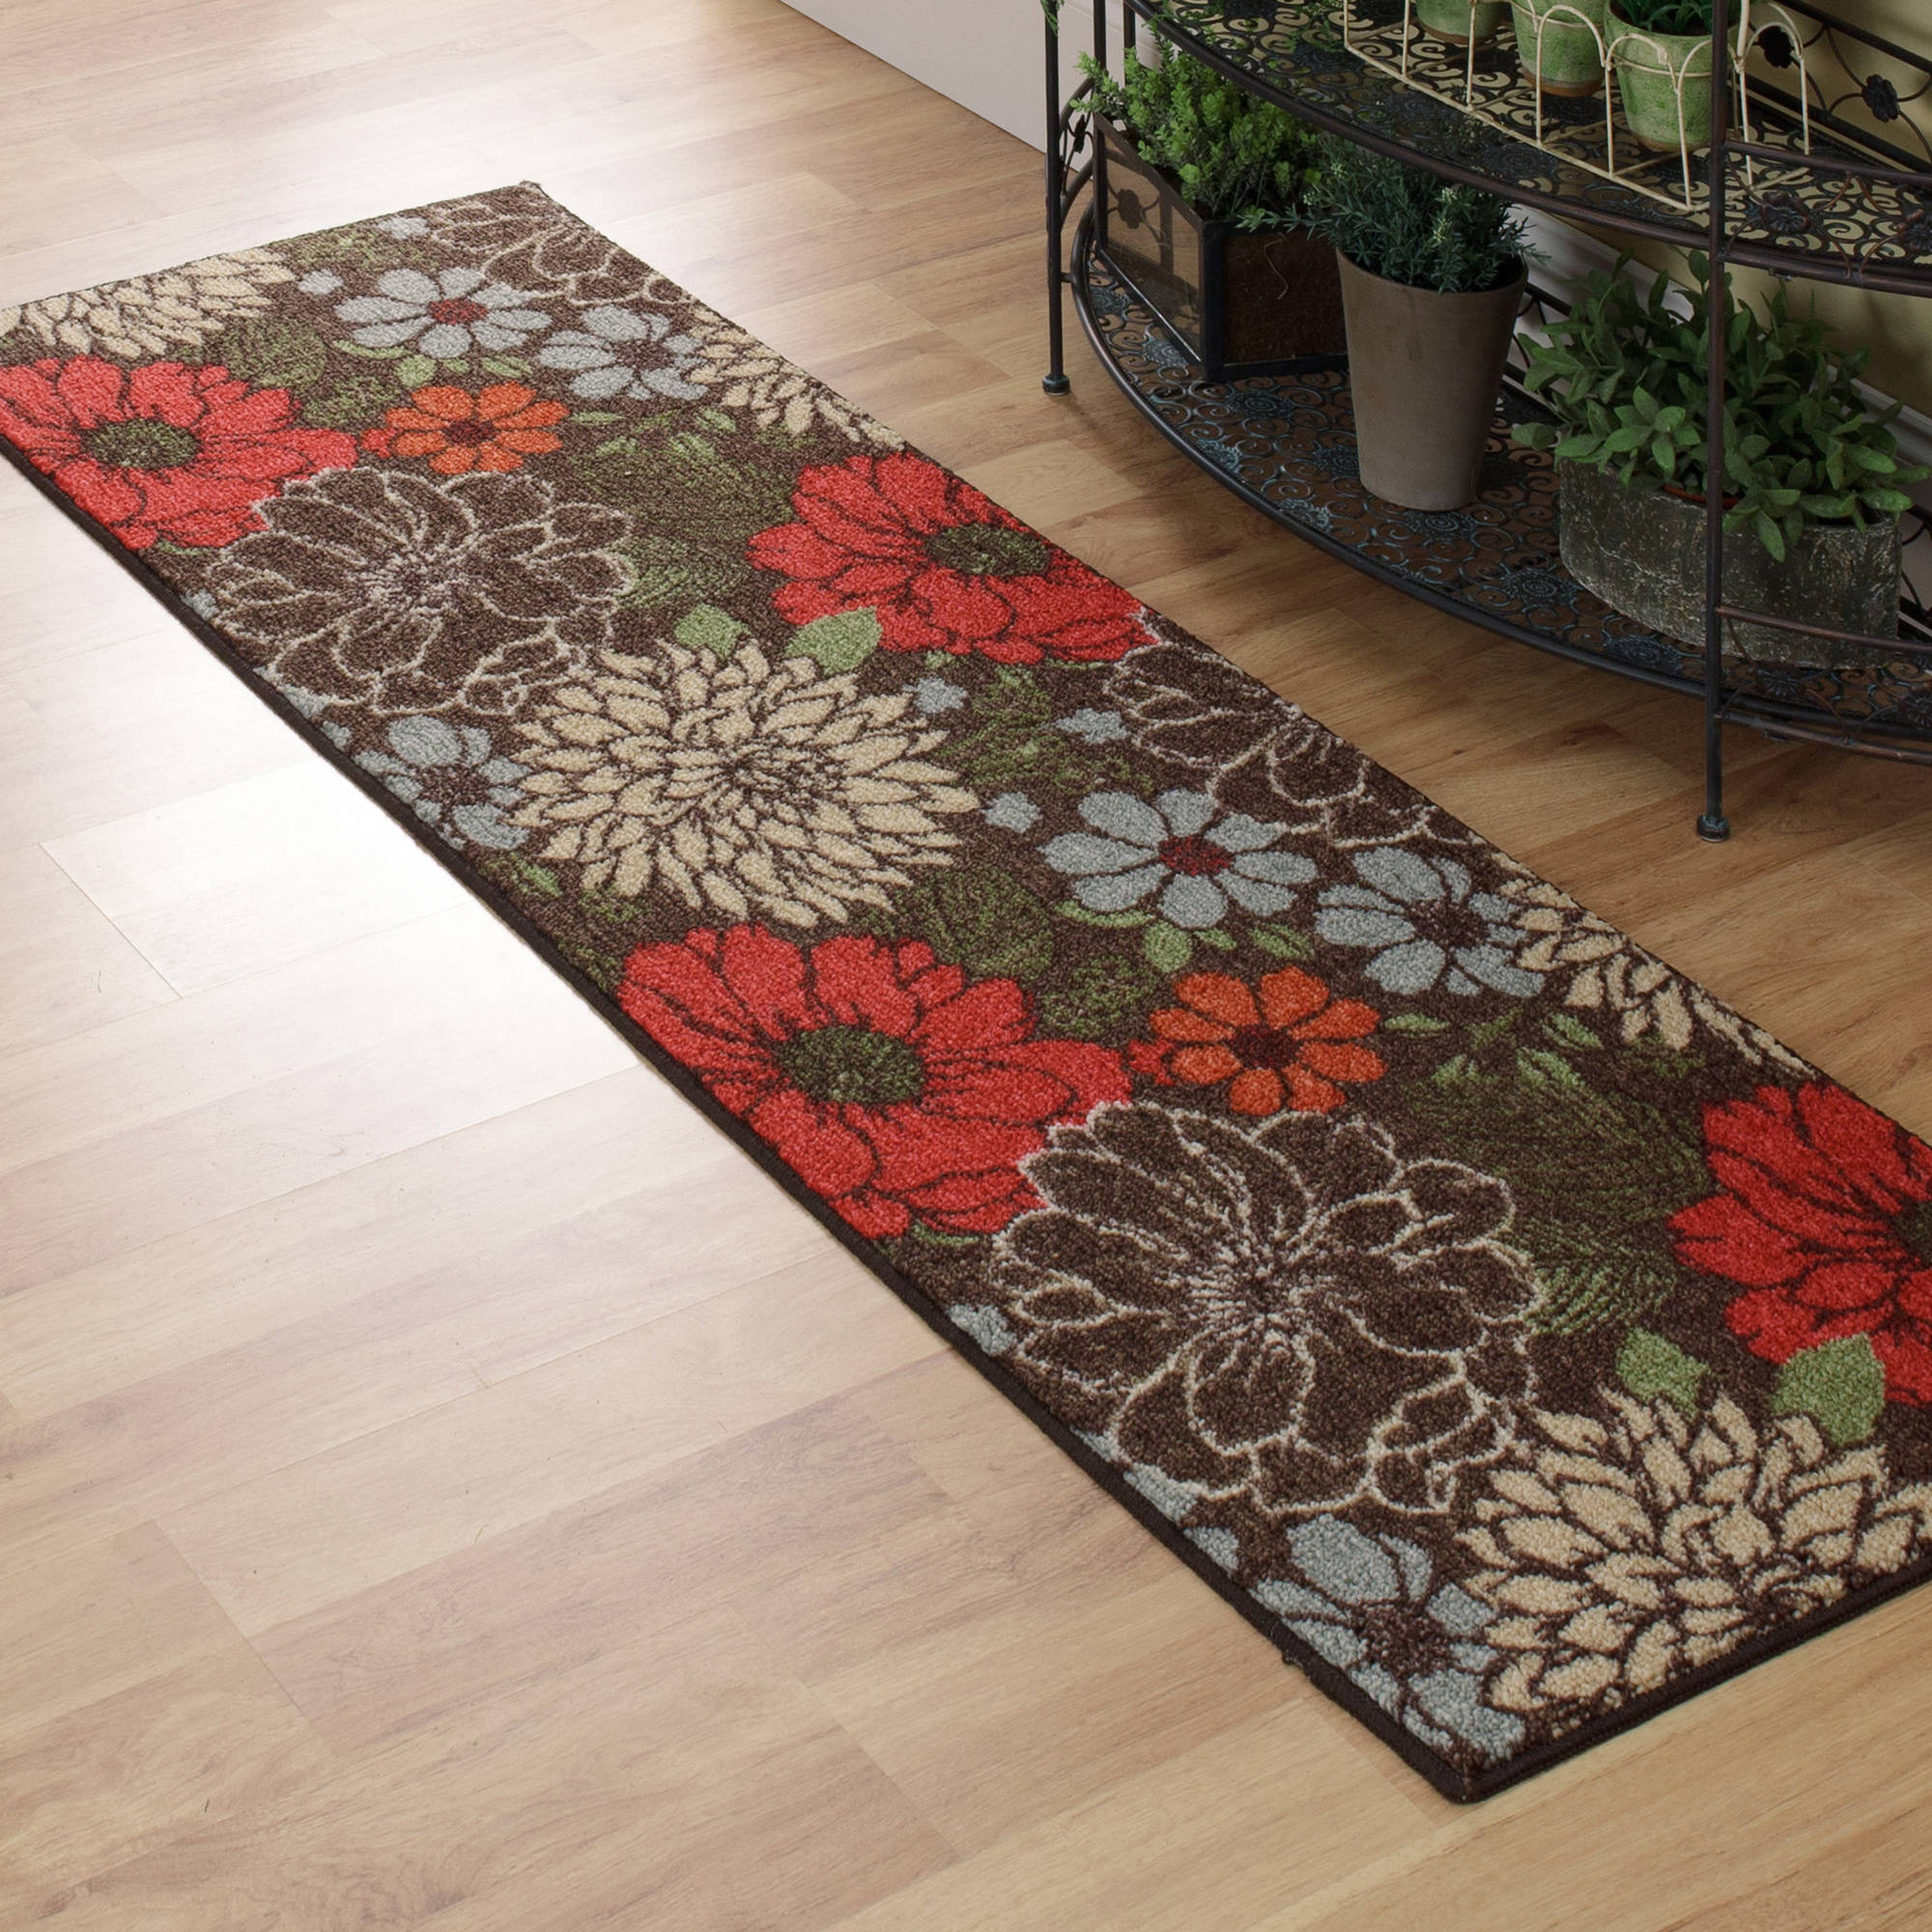 "Better Homes and Gardens Sorbet Floral Runner, 1'11"" x 6'"